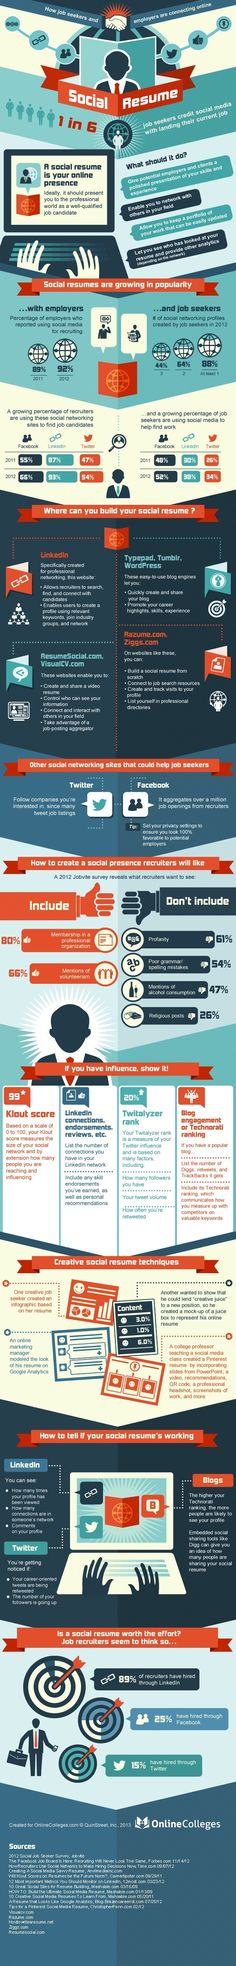 This infographic explores the growing role social media plays when recruiters look for new talent. Check it out for some handy tips!